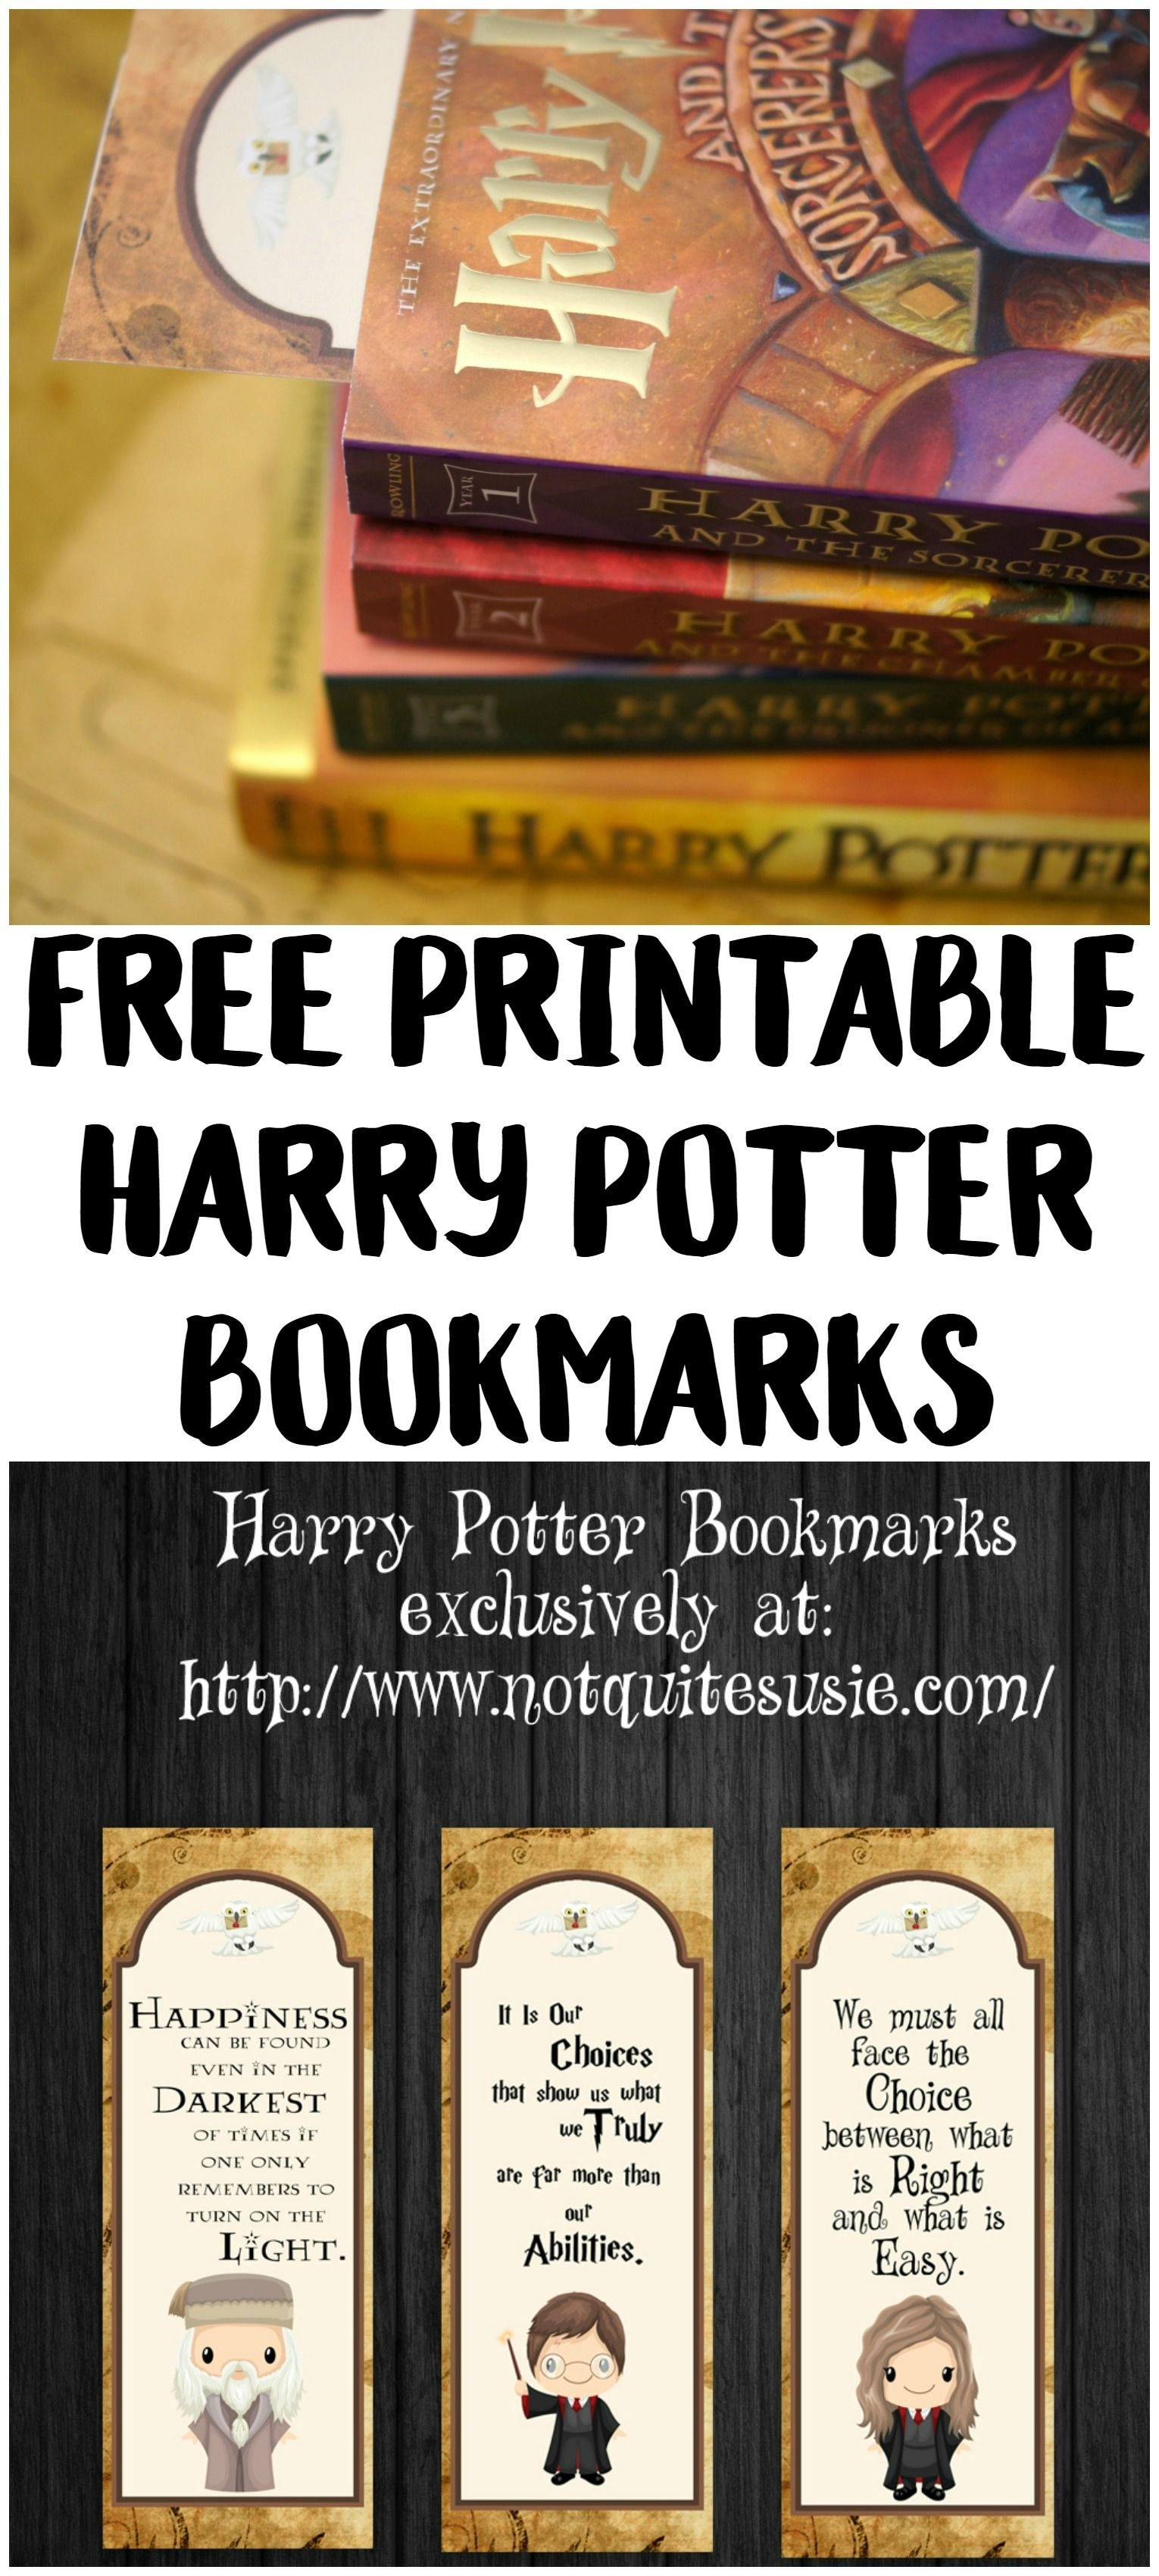 Free Printable Harry Potter Bookmarks | Harry Potter Hogwarts - Free Printable Harry Potter Pictures